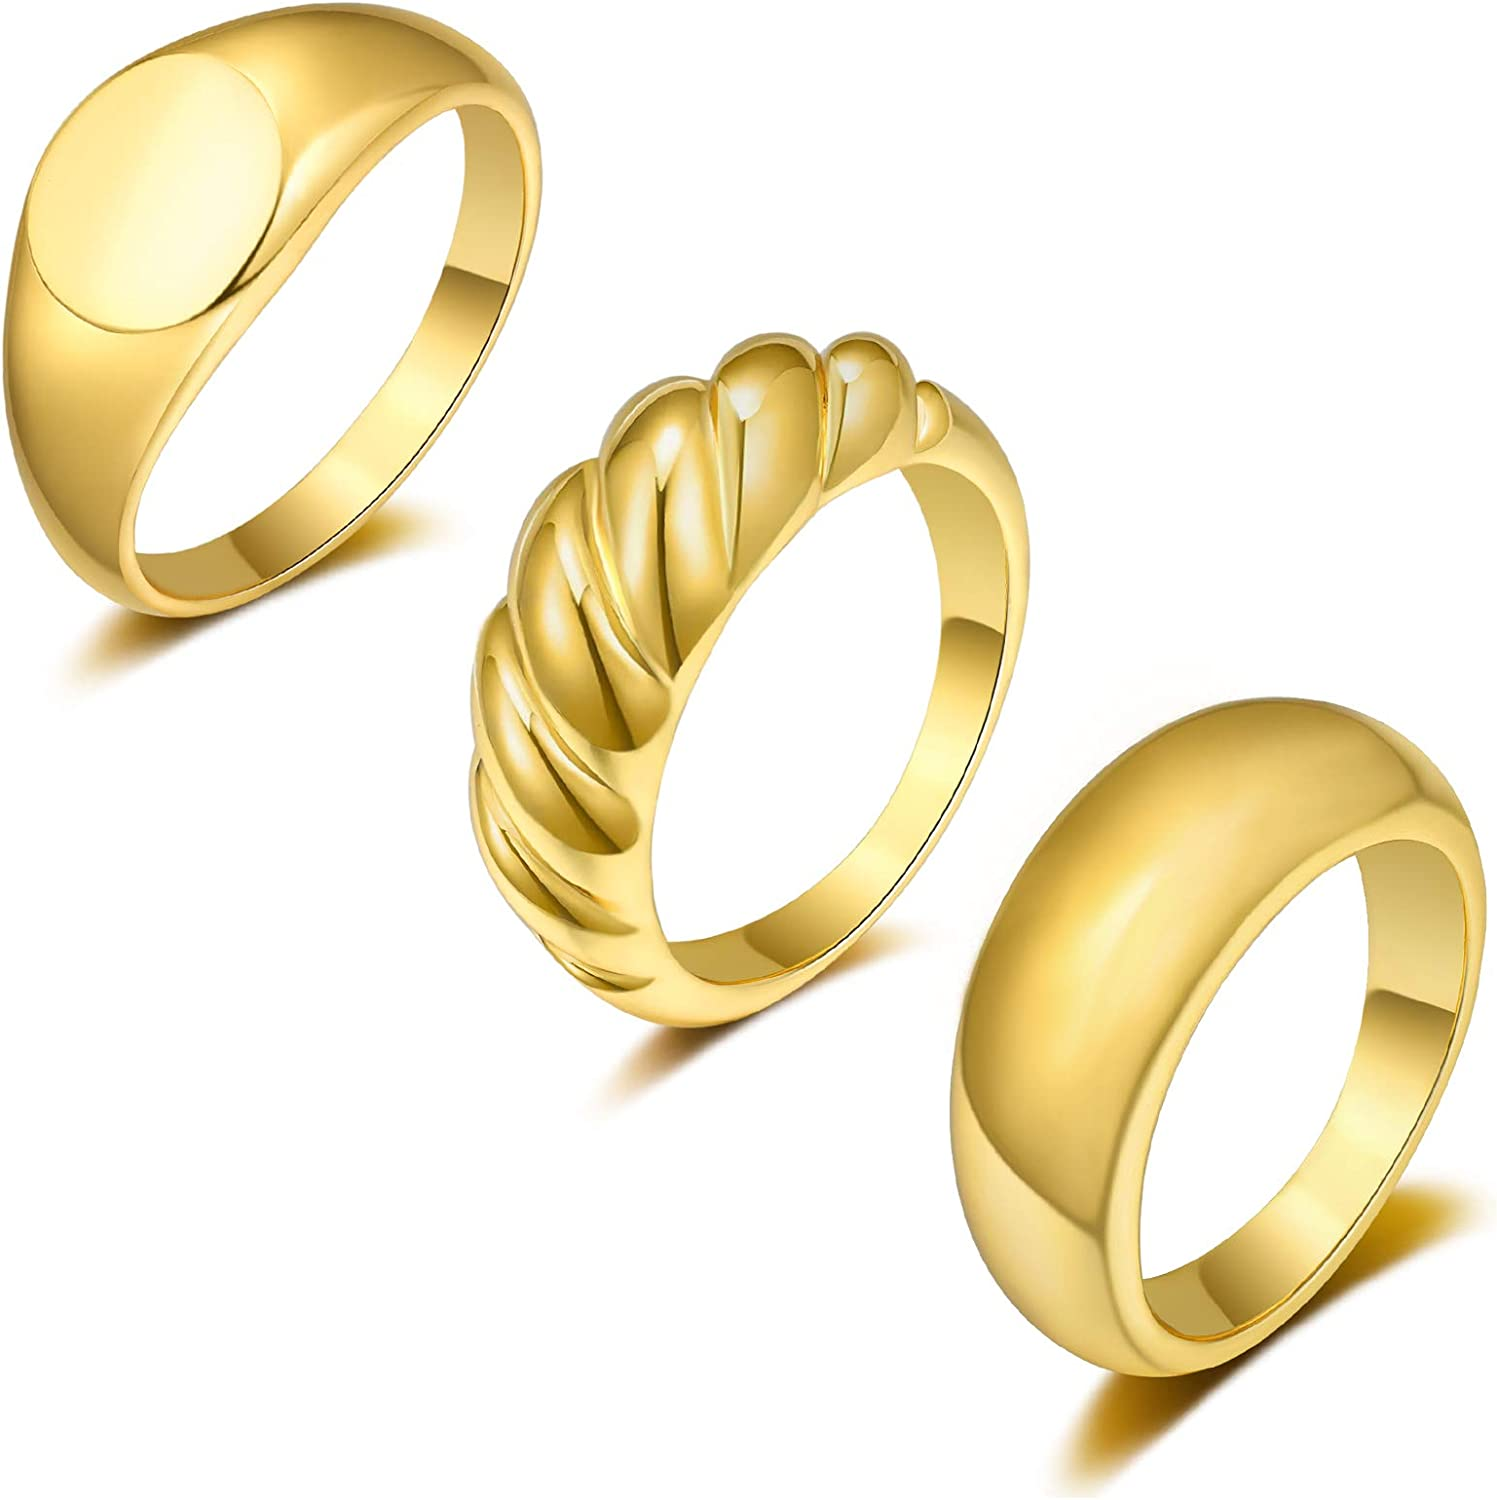 Sunssy 3-6PCS Dome Chunky Rings Thick Gold Rings for Women Girls Round Signet Rings Braided Twisted Signet Ring Jewelry Minimalist Statement Ring Size 5-9